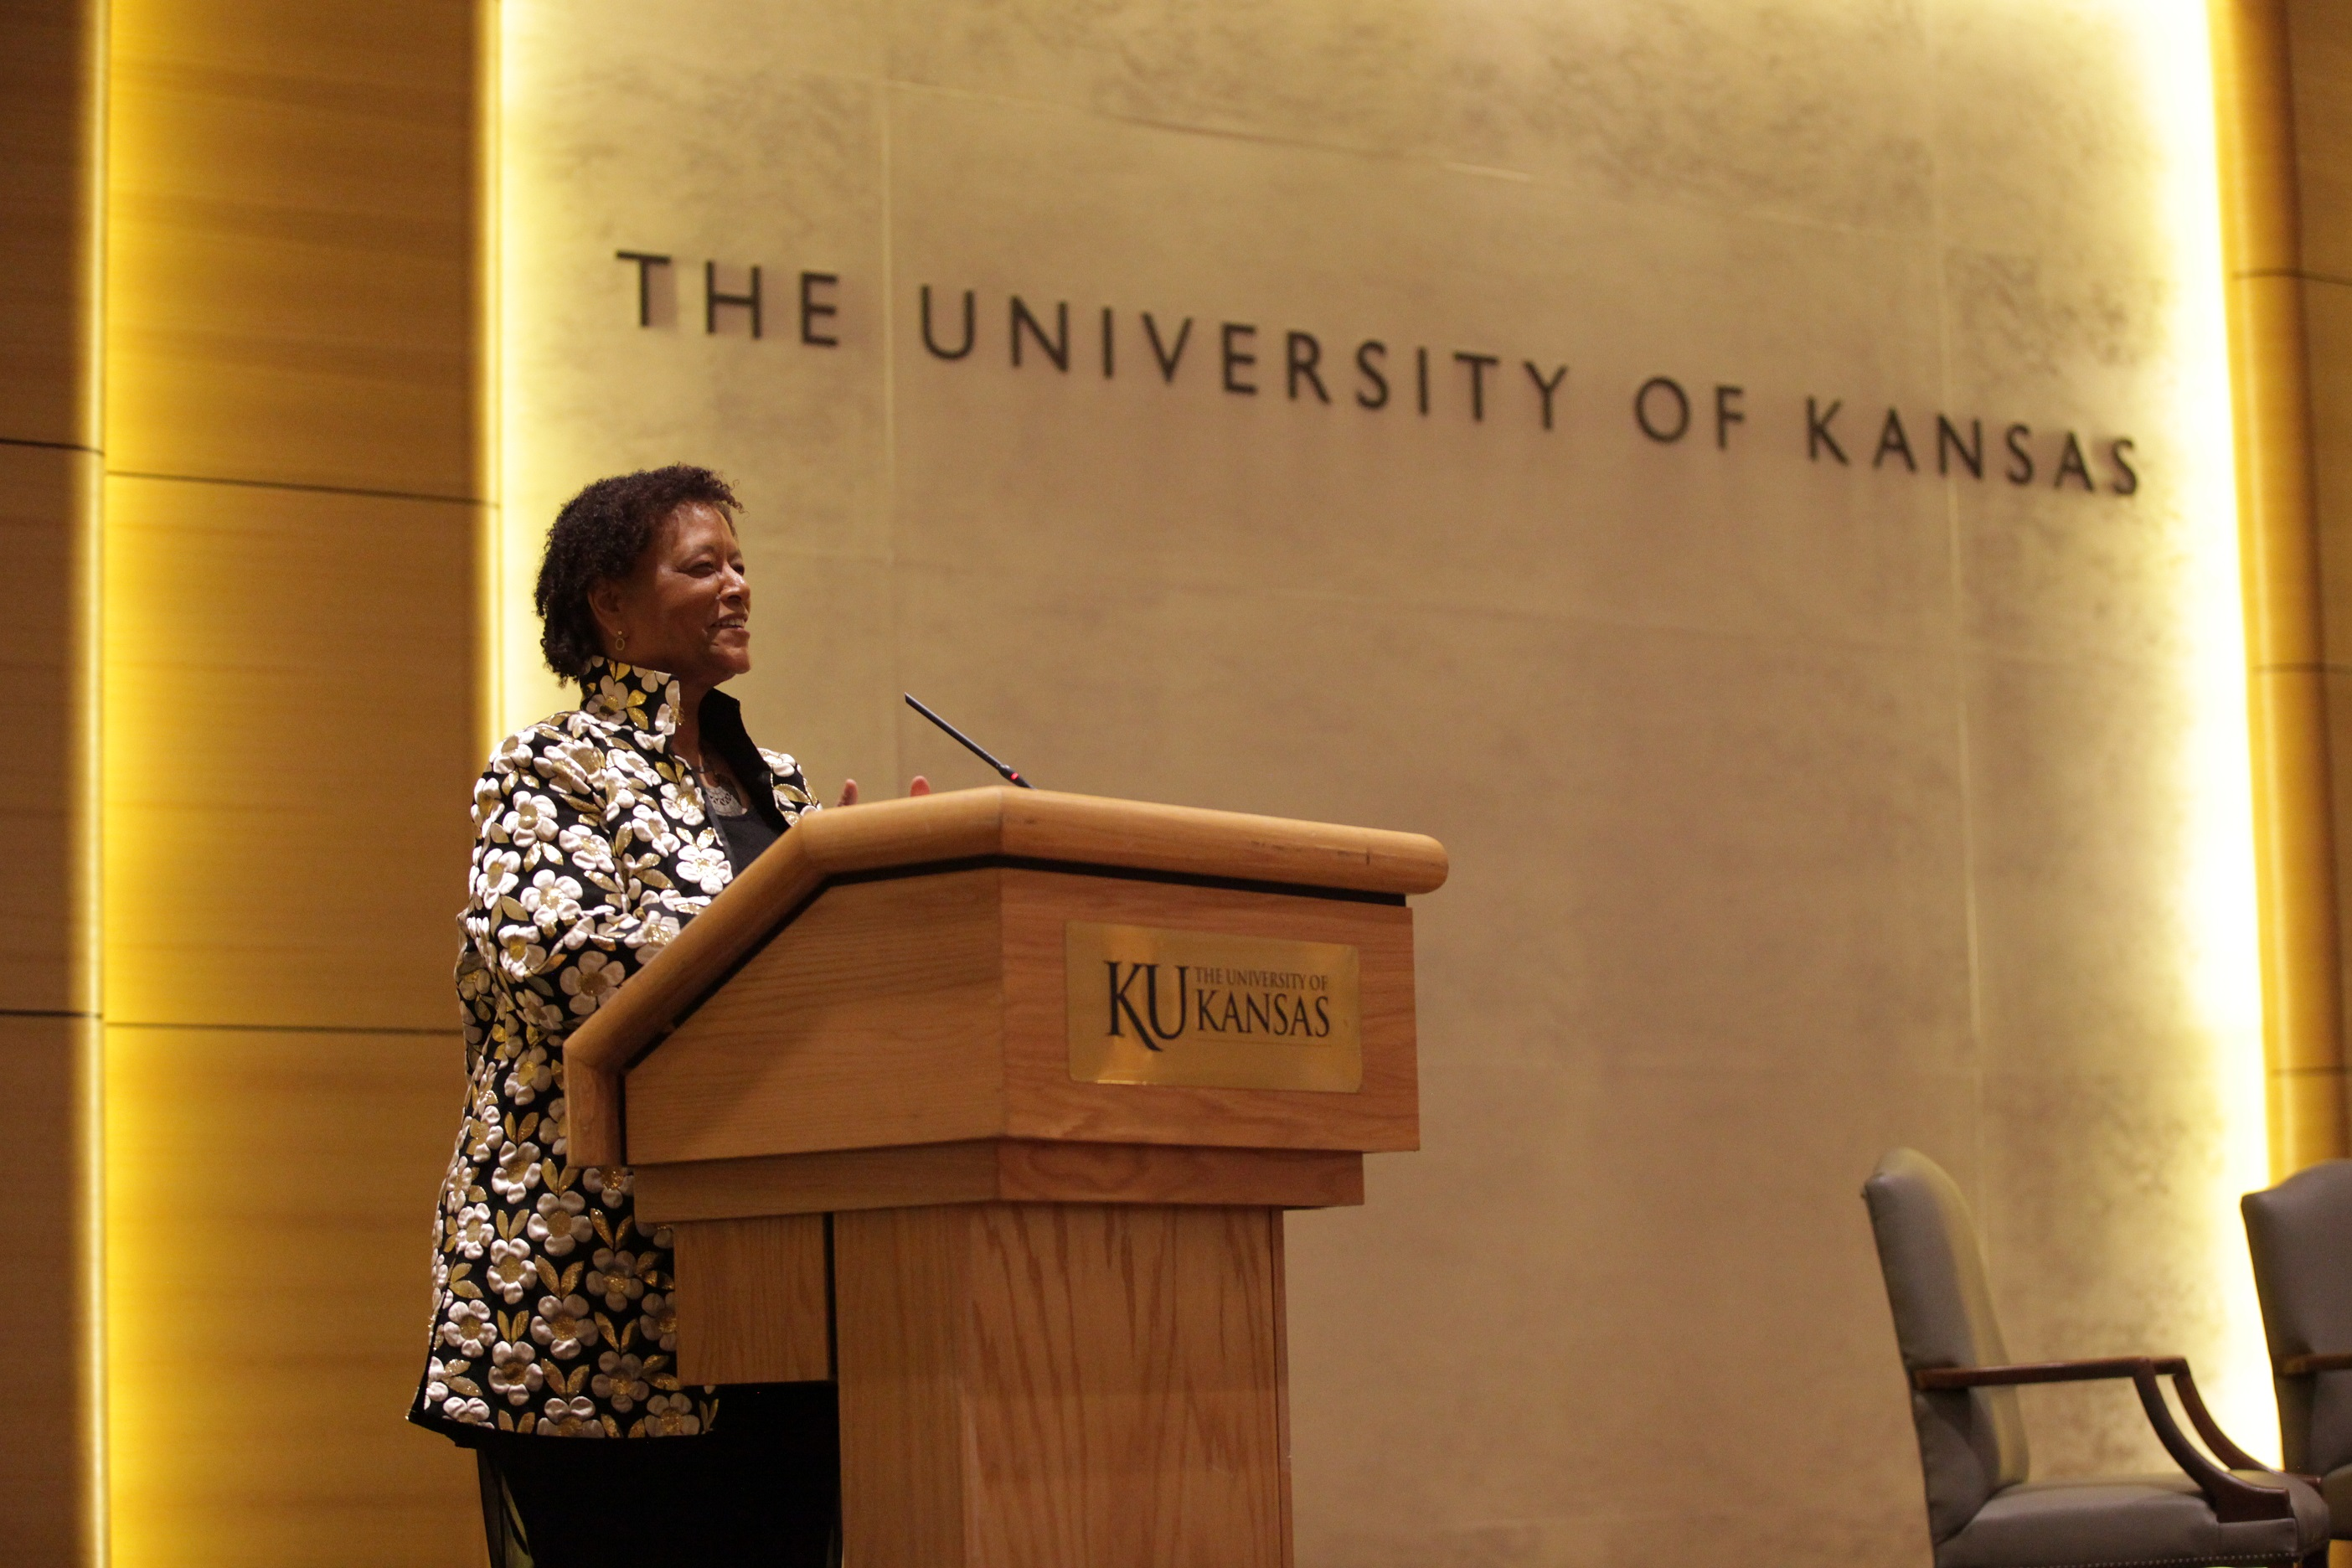 Photo by Ann Dean, courtesy of KU School of Business